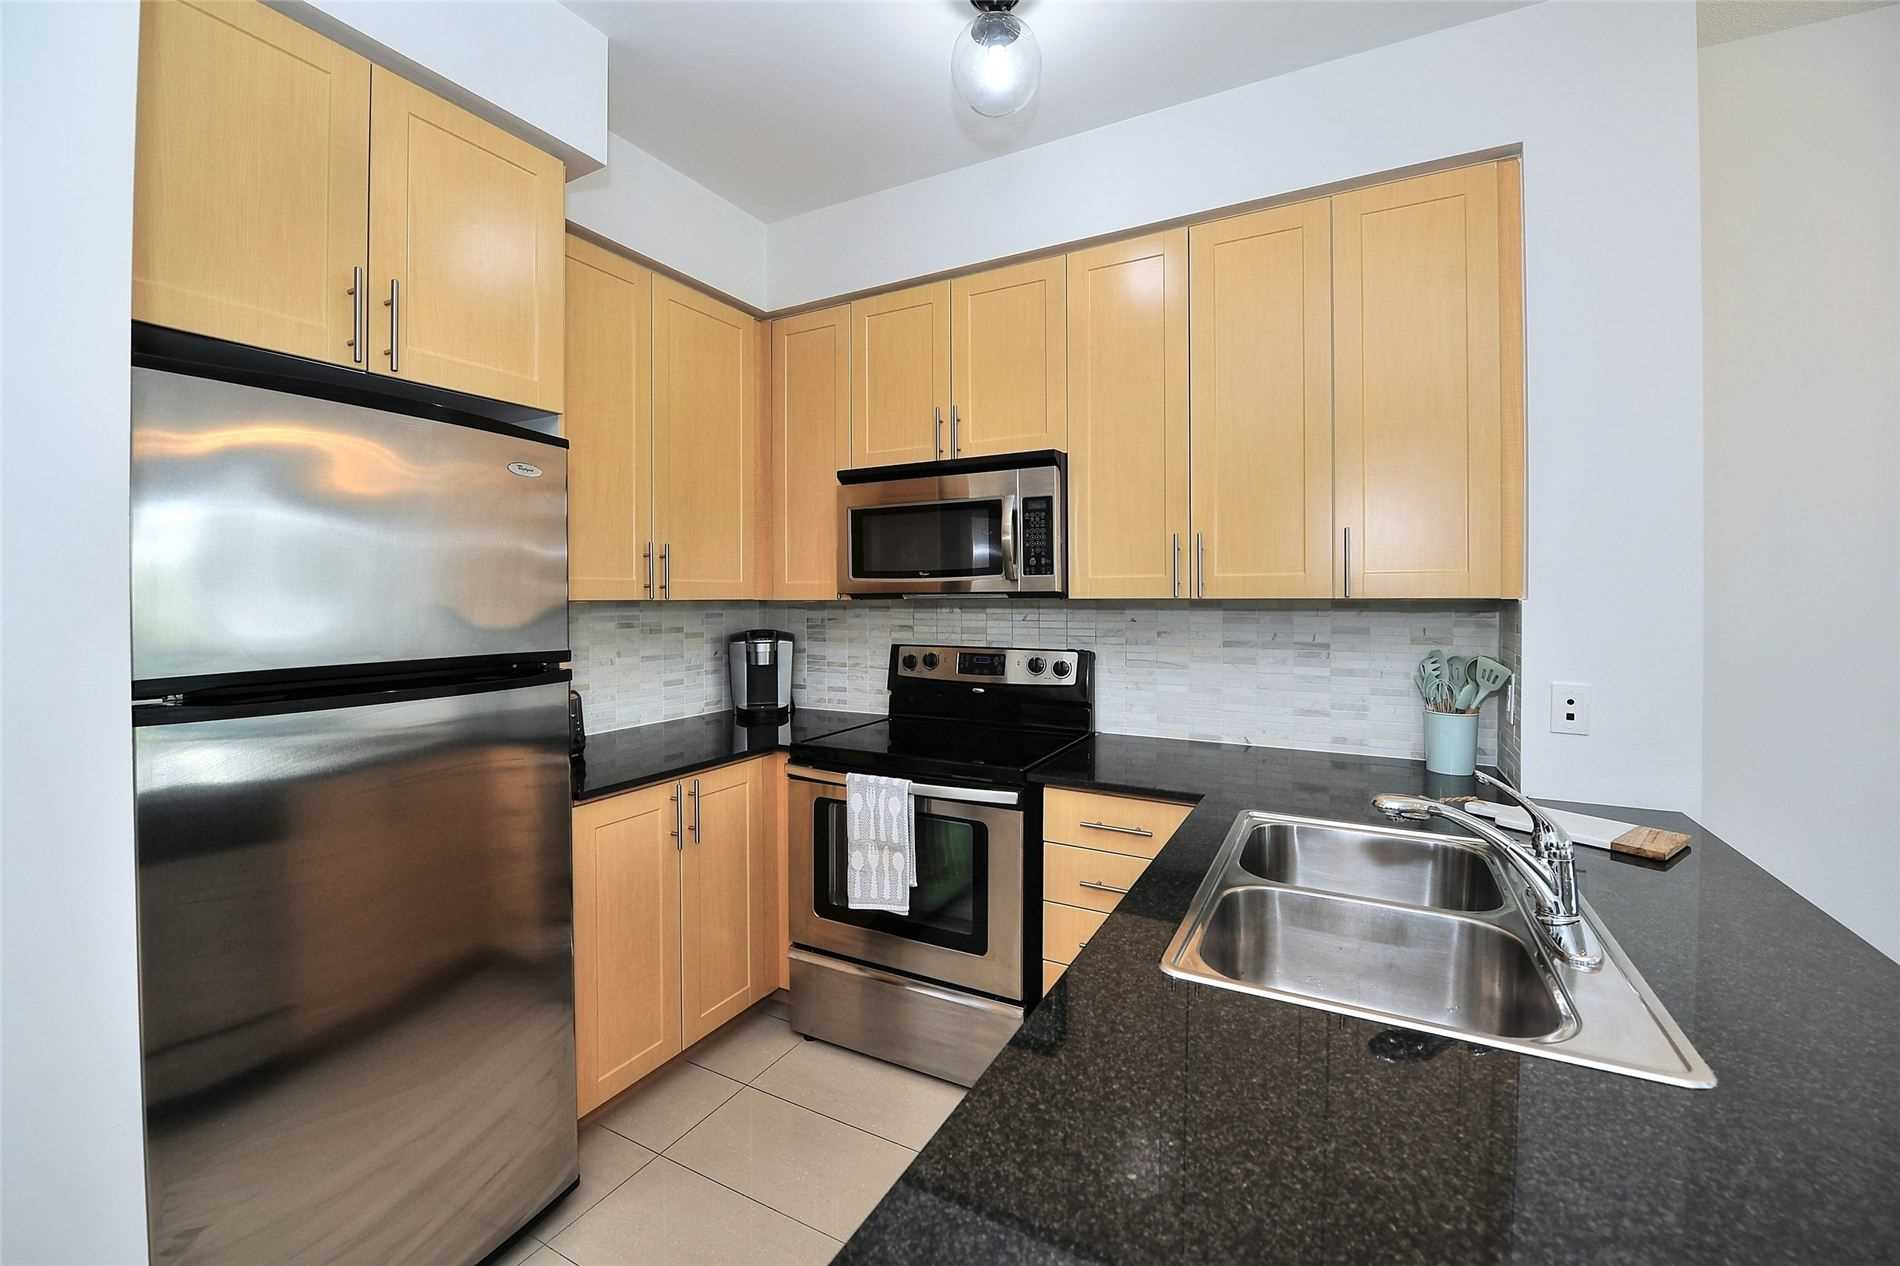 Image 8 of 30 showing inside of 1 Bedroom Condo Apt Apartment for Sale at 30 North Park Rd Unit# 101, Vaughan L4J0G6